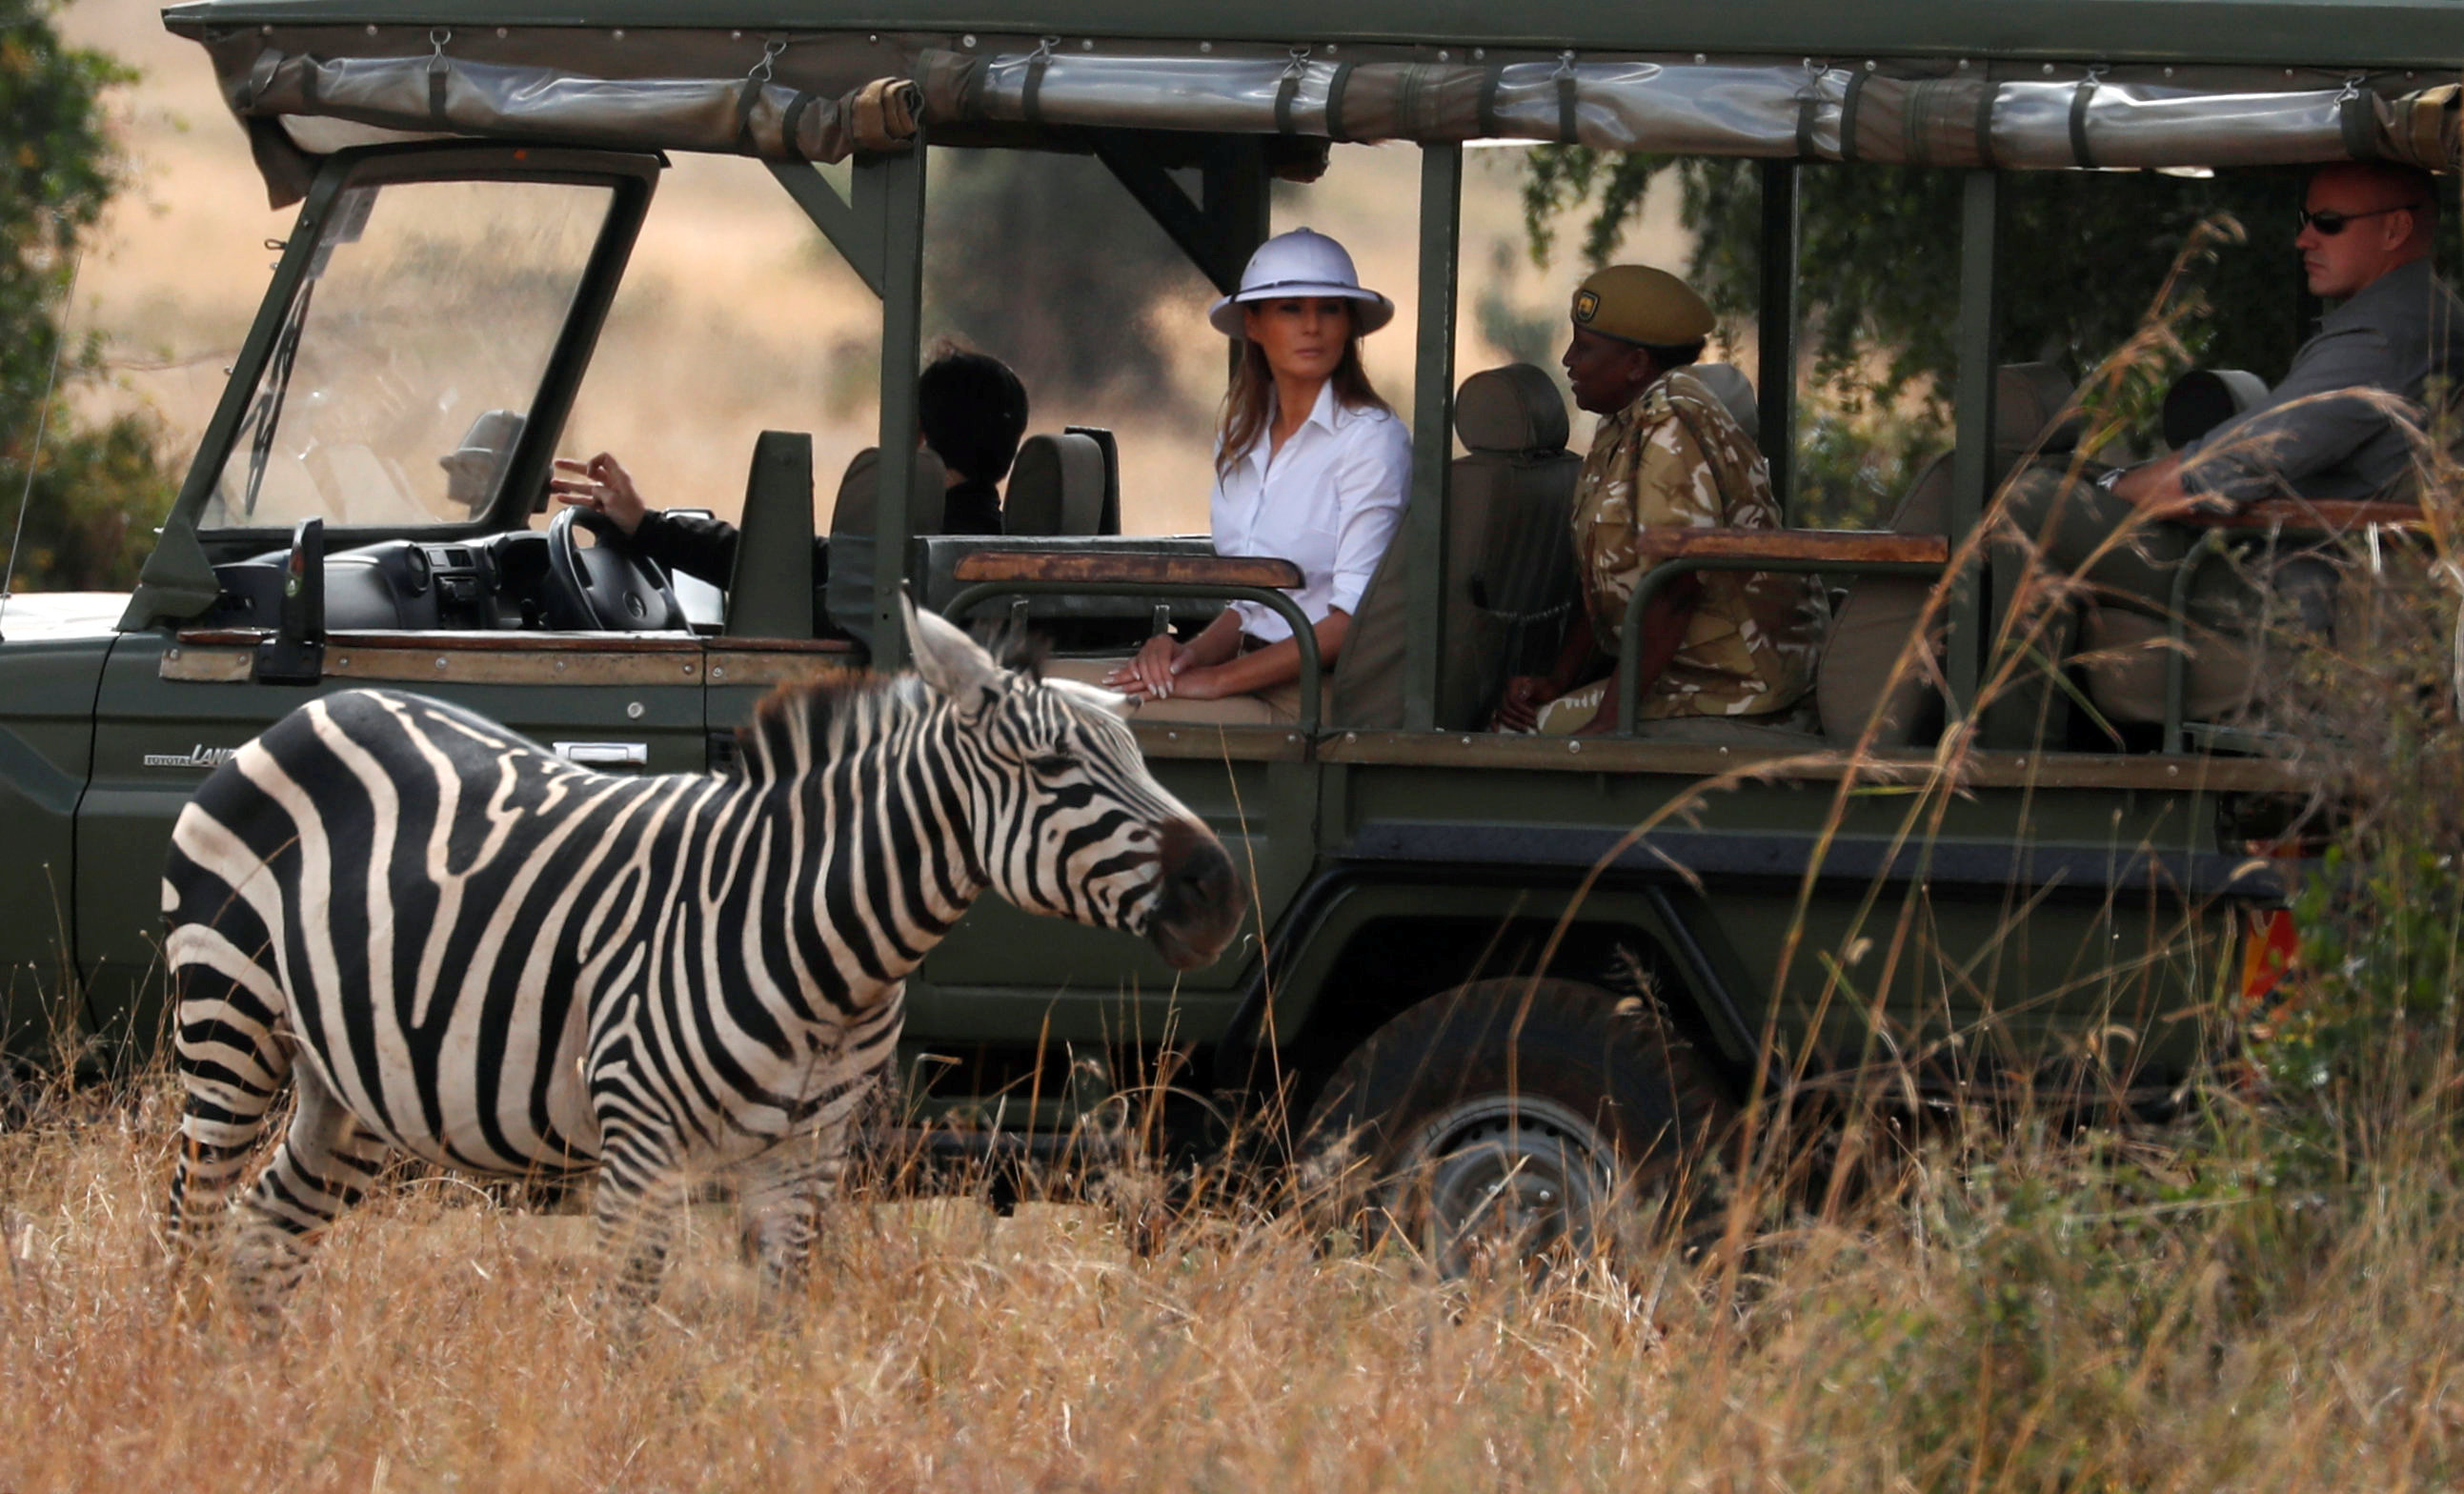 U.S. first lady Melania Trump looks at a zebra during her game drive at the Nairobi National Park in Nairobi